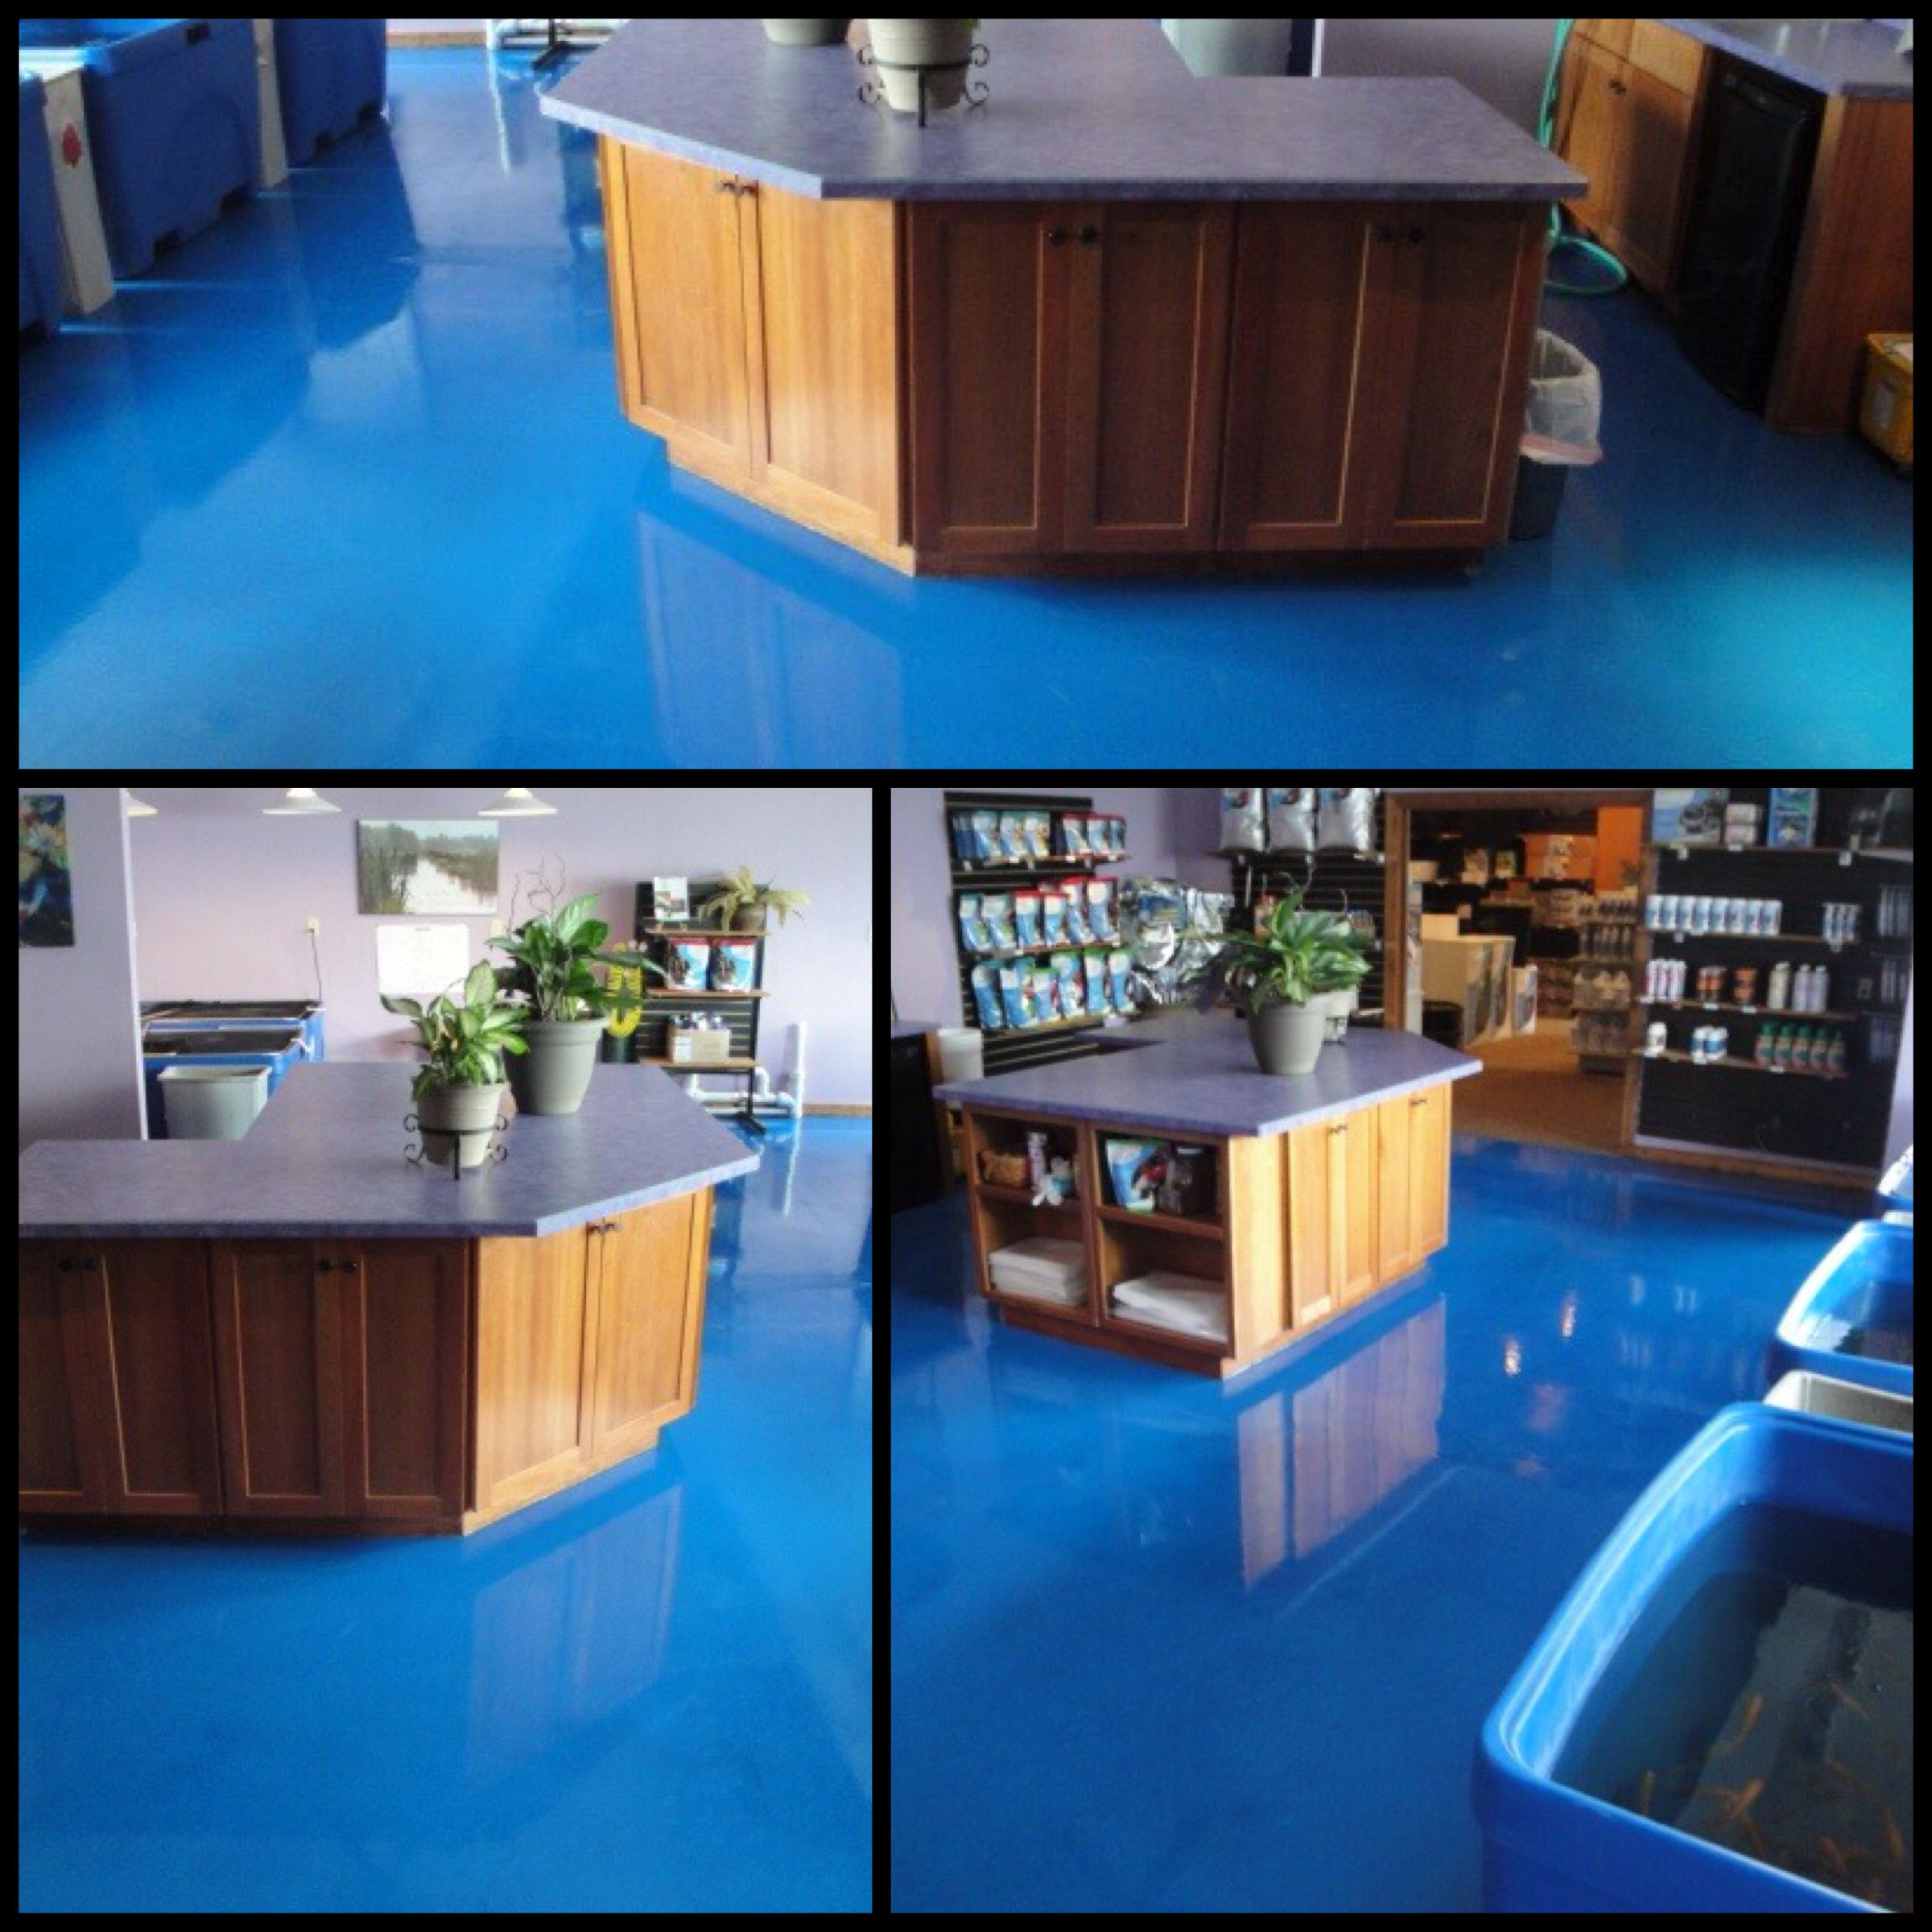 A Striking Reflective Blue Floor Gives The Illusion Of